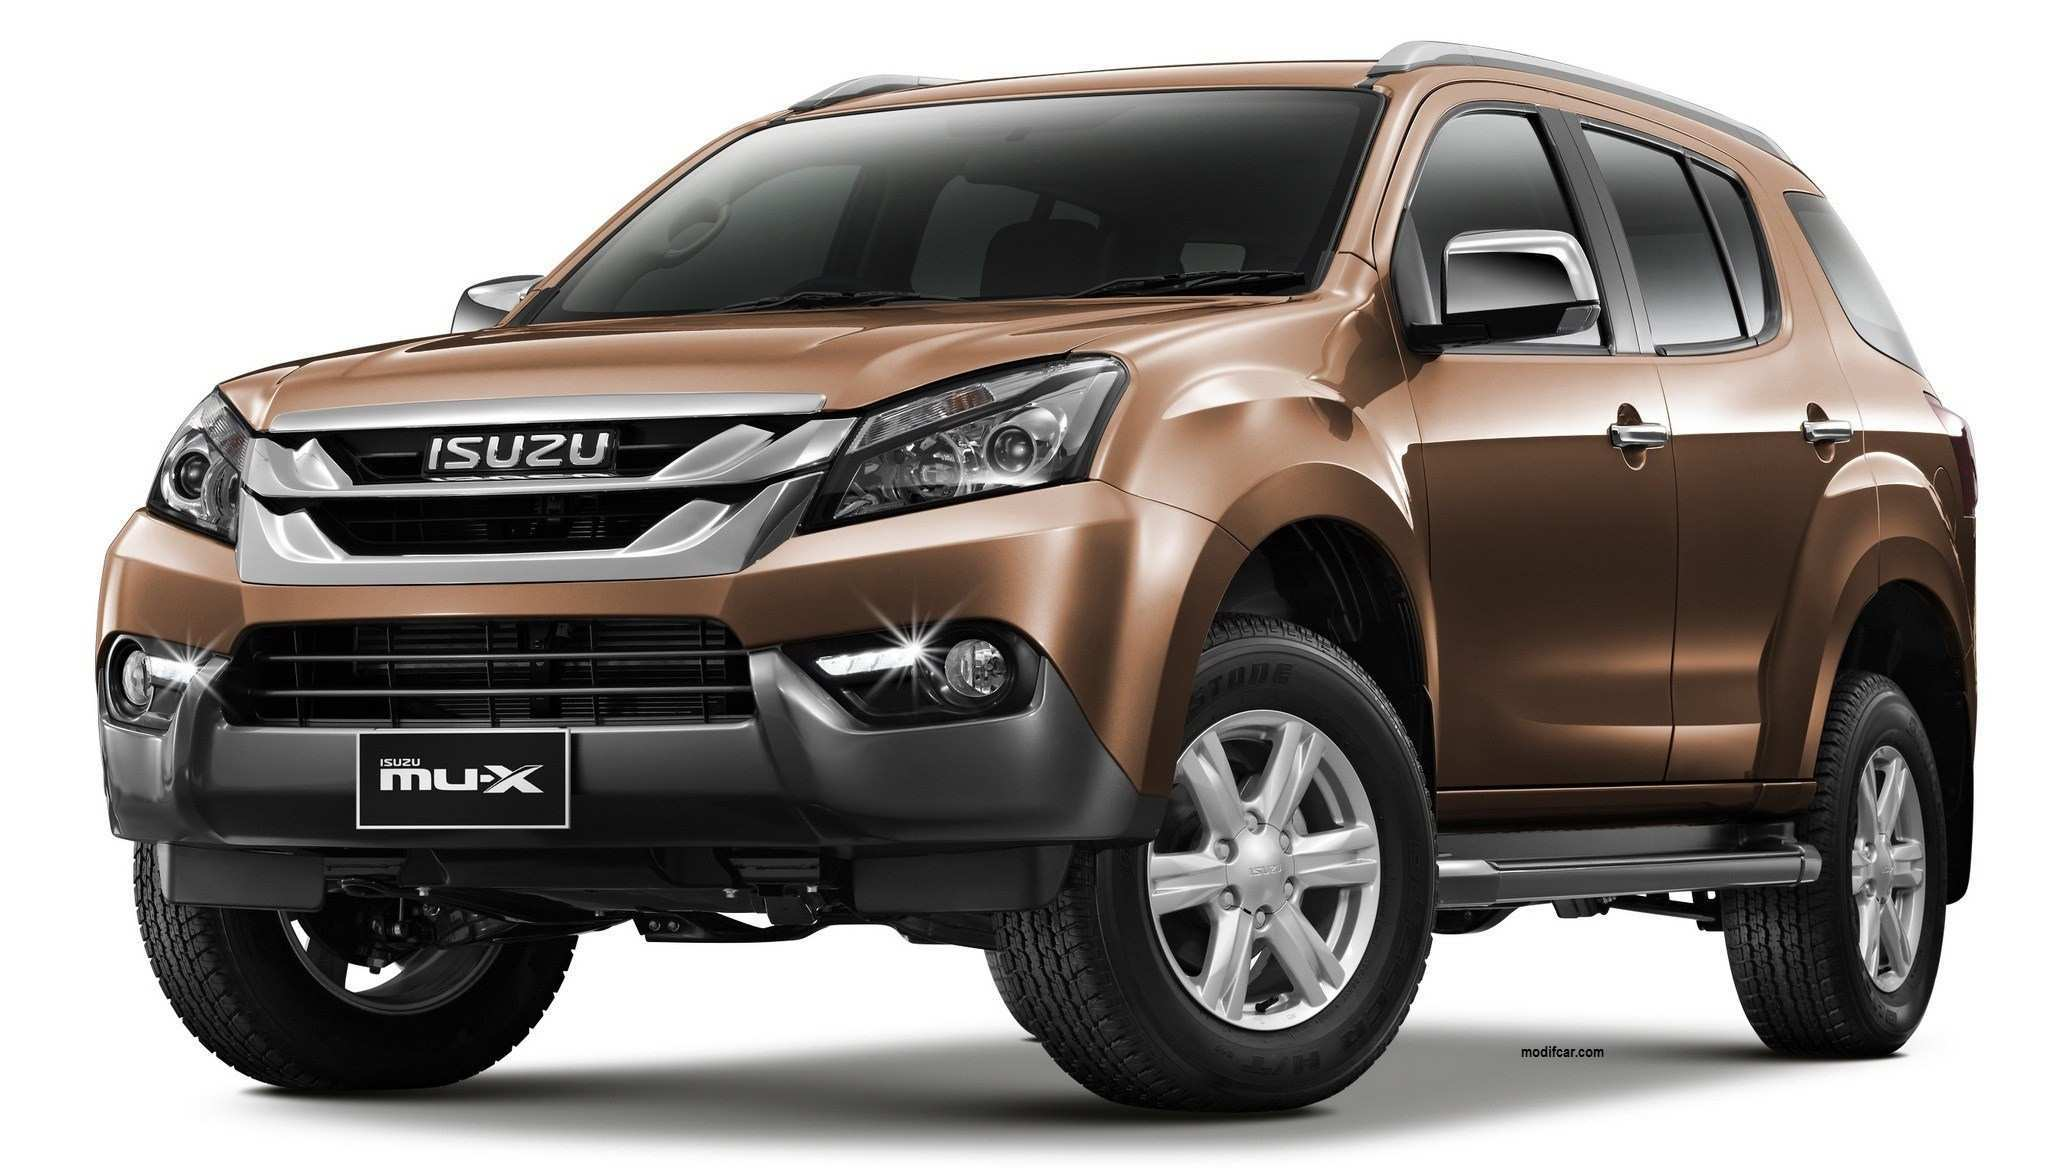 78 All New Isuzu Panther 2019 Release Date with Isuzu Panther 2019